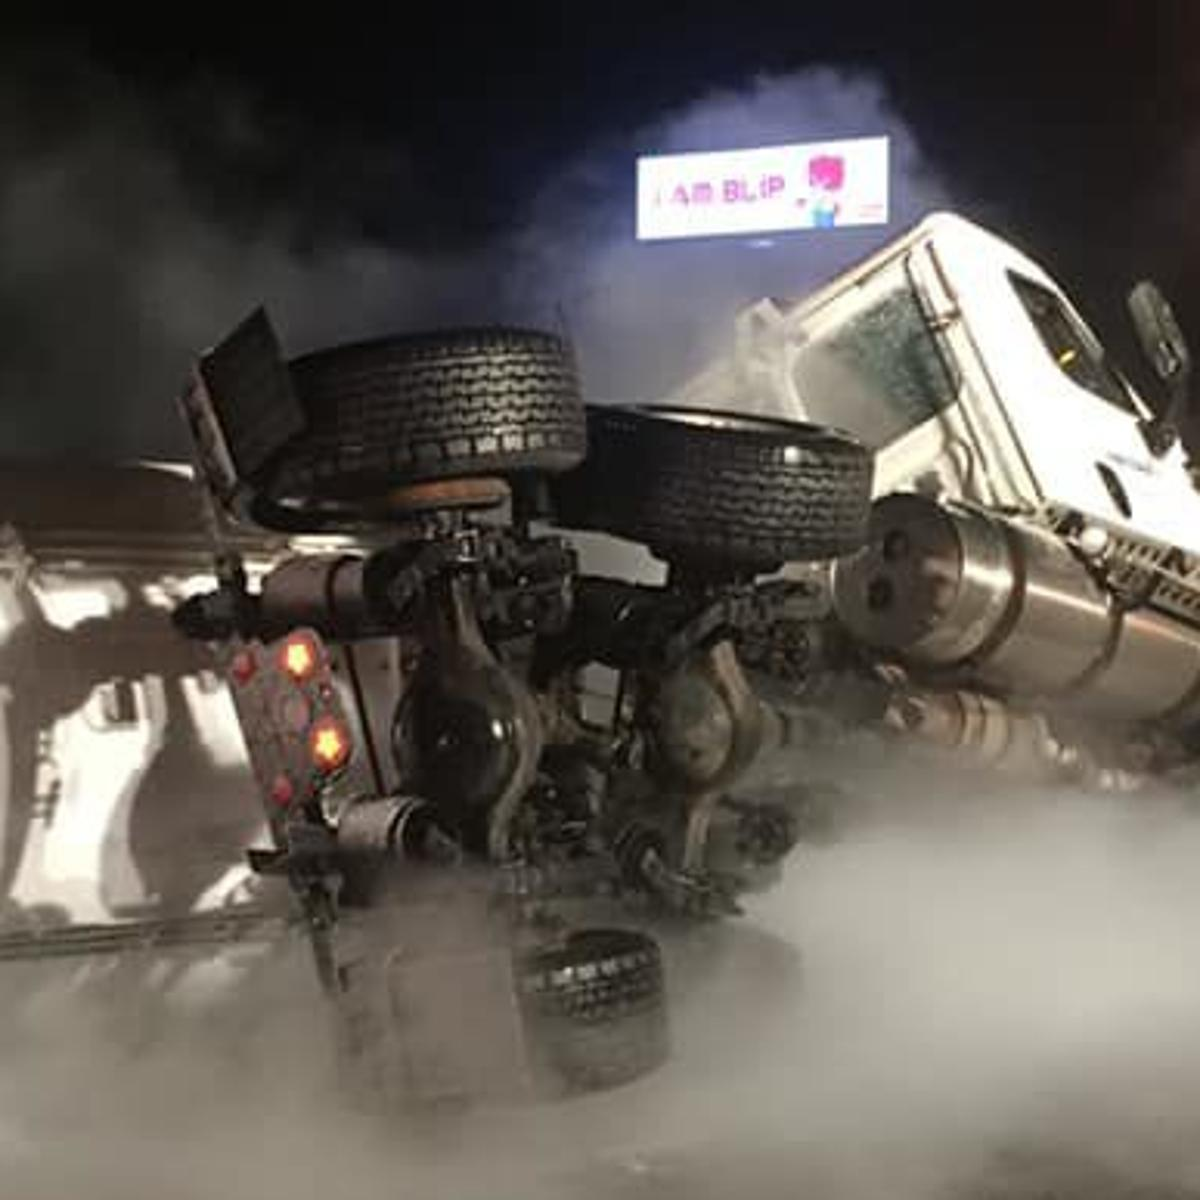 UPDATE: I-80/94 lanes expected to reopen soon after semi tanker